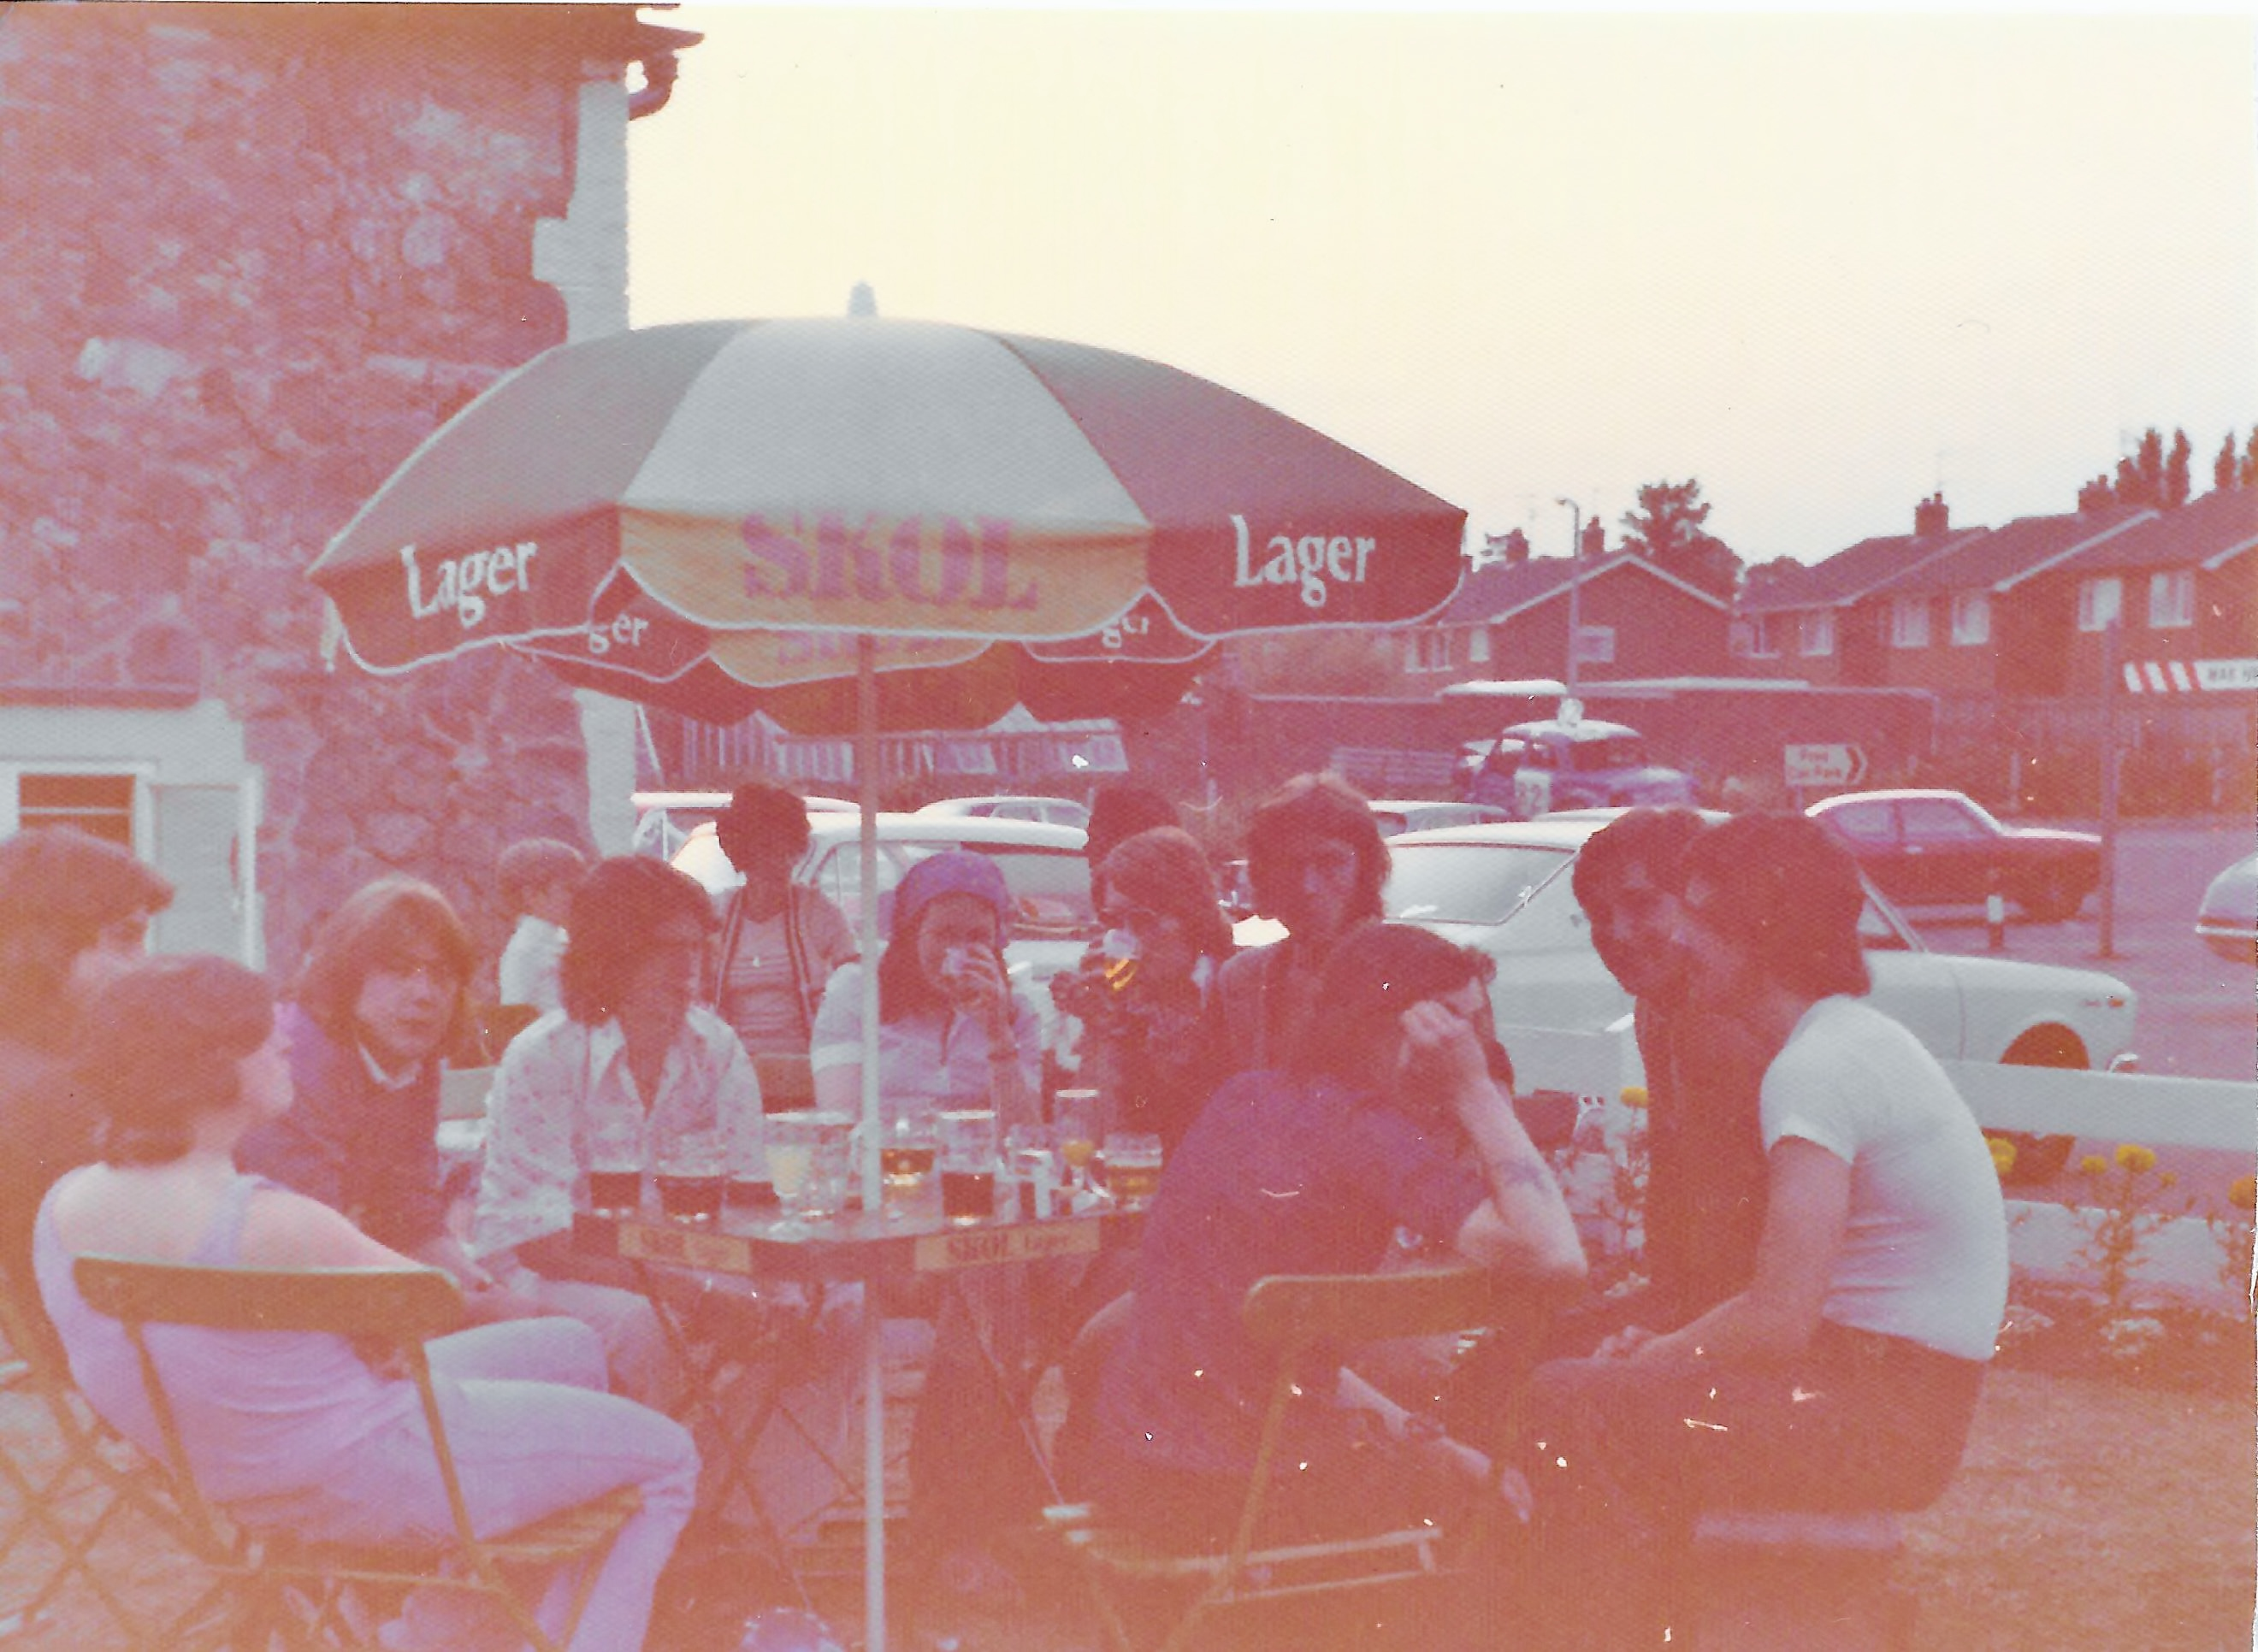 Three Crowns Lawn, Aug, 75. L To R. Andy Freer?, Pete Rich? Jack, Mick, Elaine Kay, Sunglsses/Unknown, Vern, Arm Covering Face?, Smiling/Unknown, Tich.